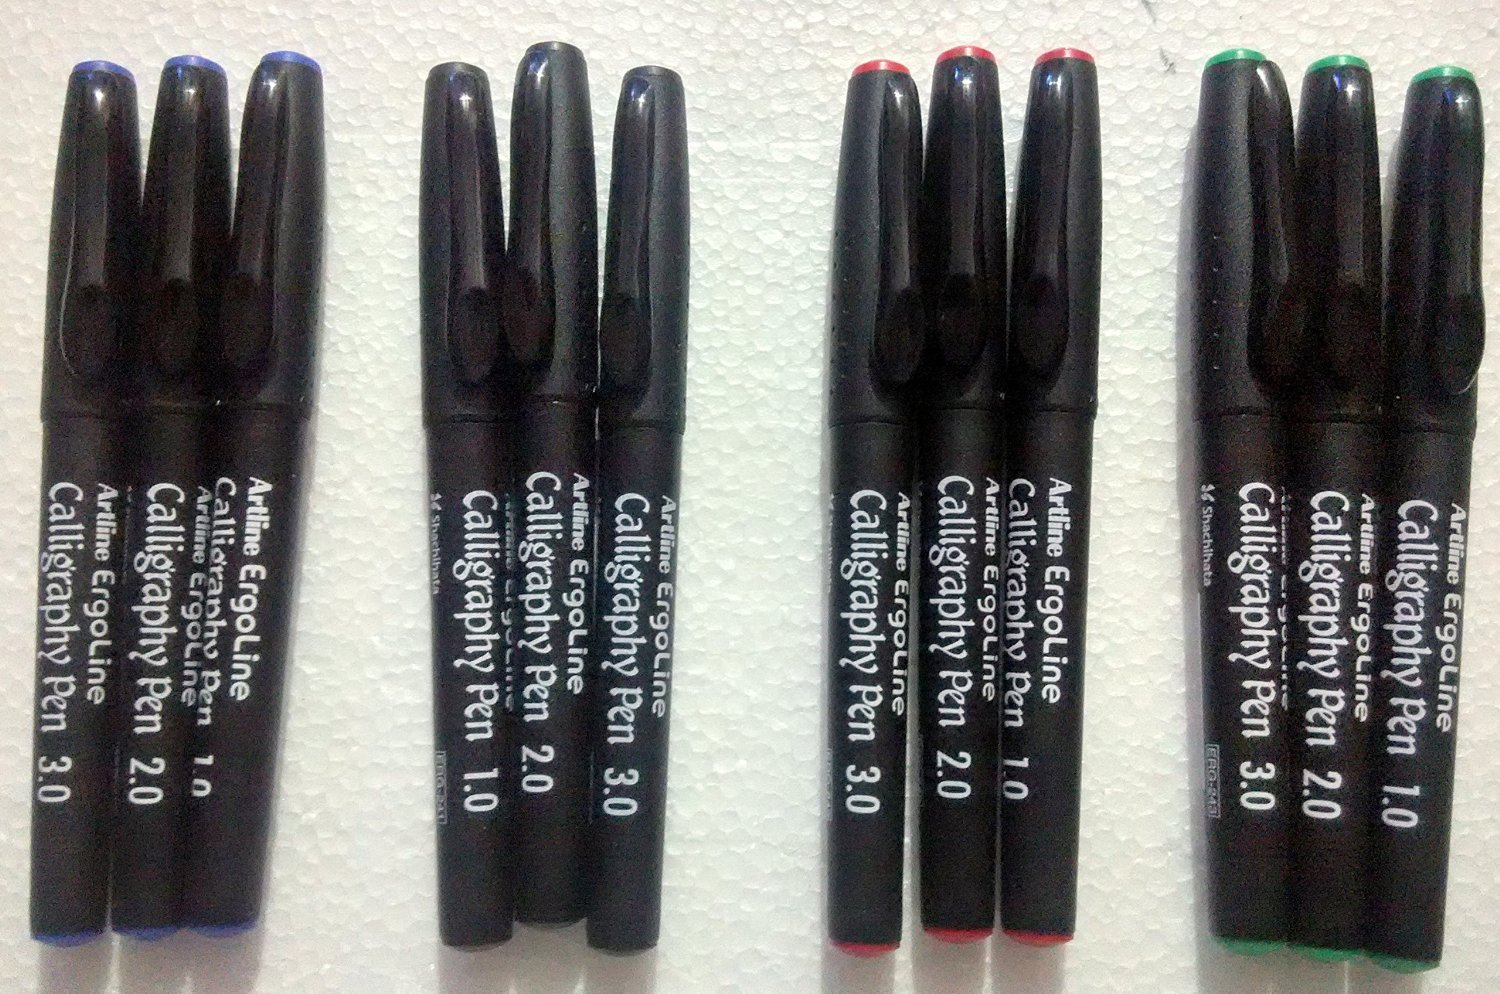 Artline Ergoline Calligraphy Fountain Pen with 1.0,2.0 & 3.0mm nibs - Blue, Black, Red and Green Ink